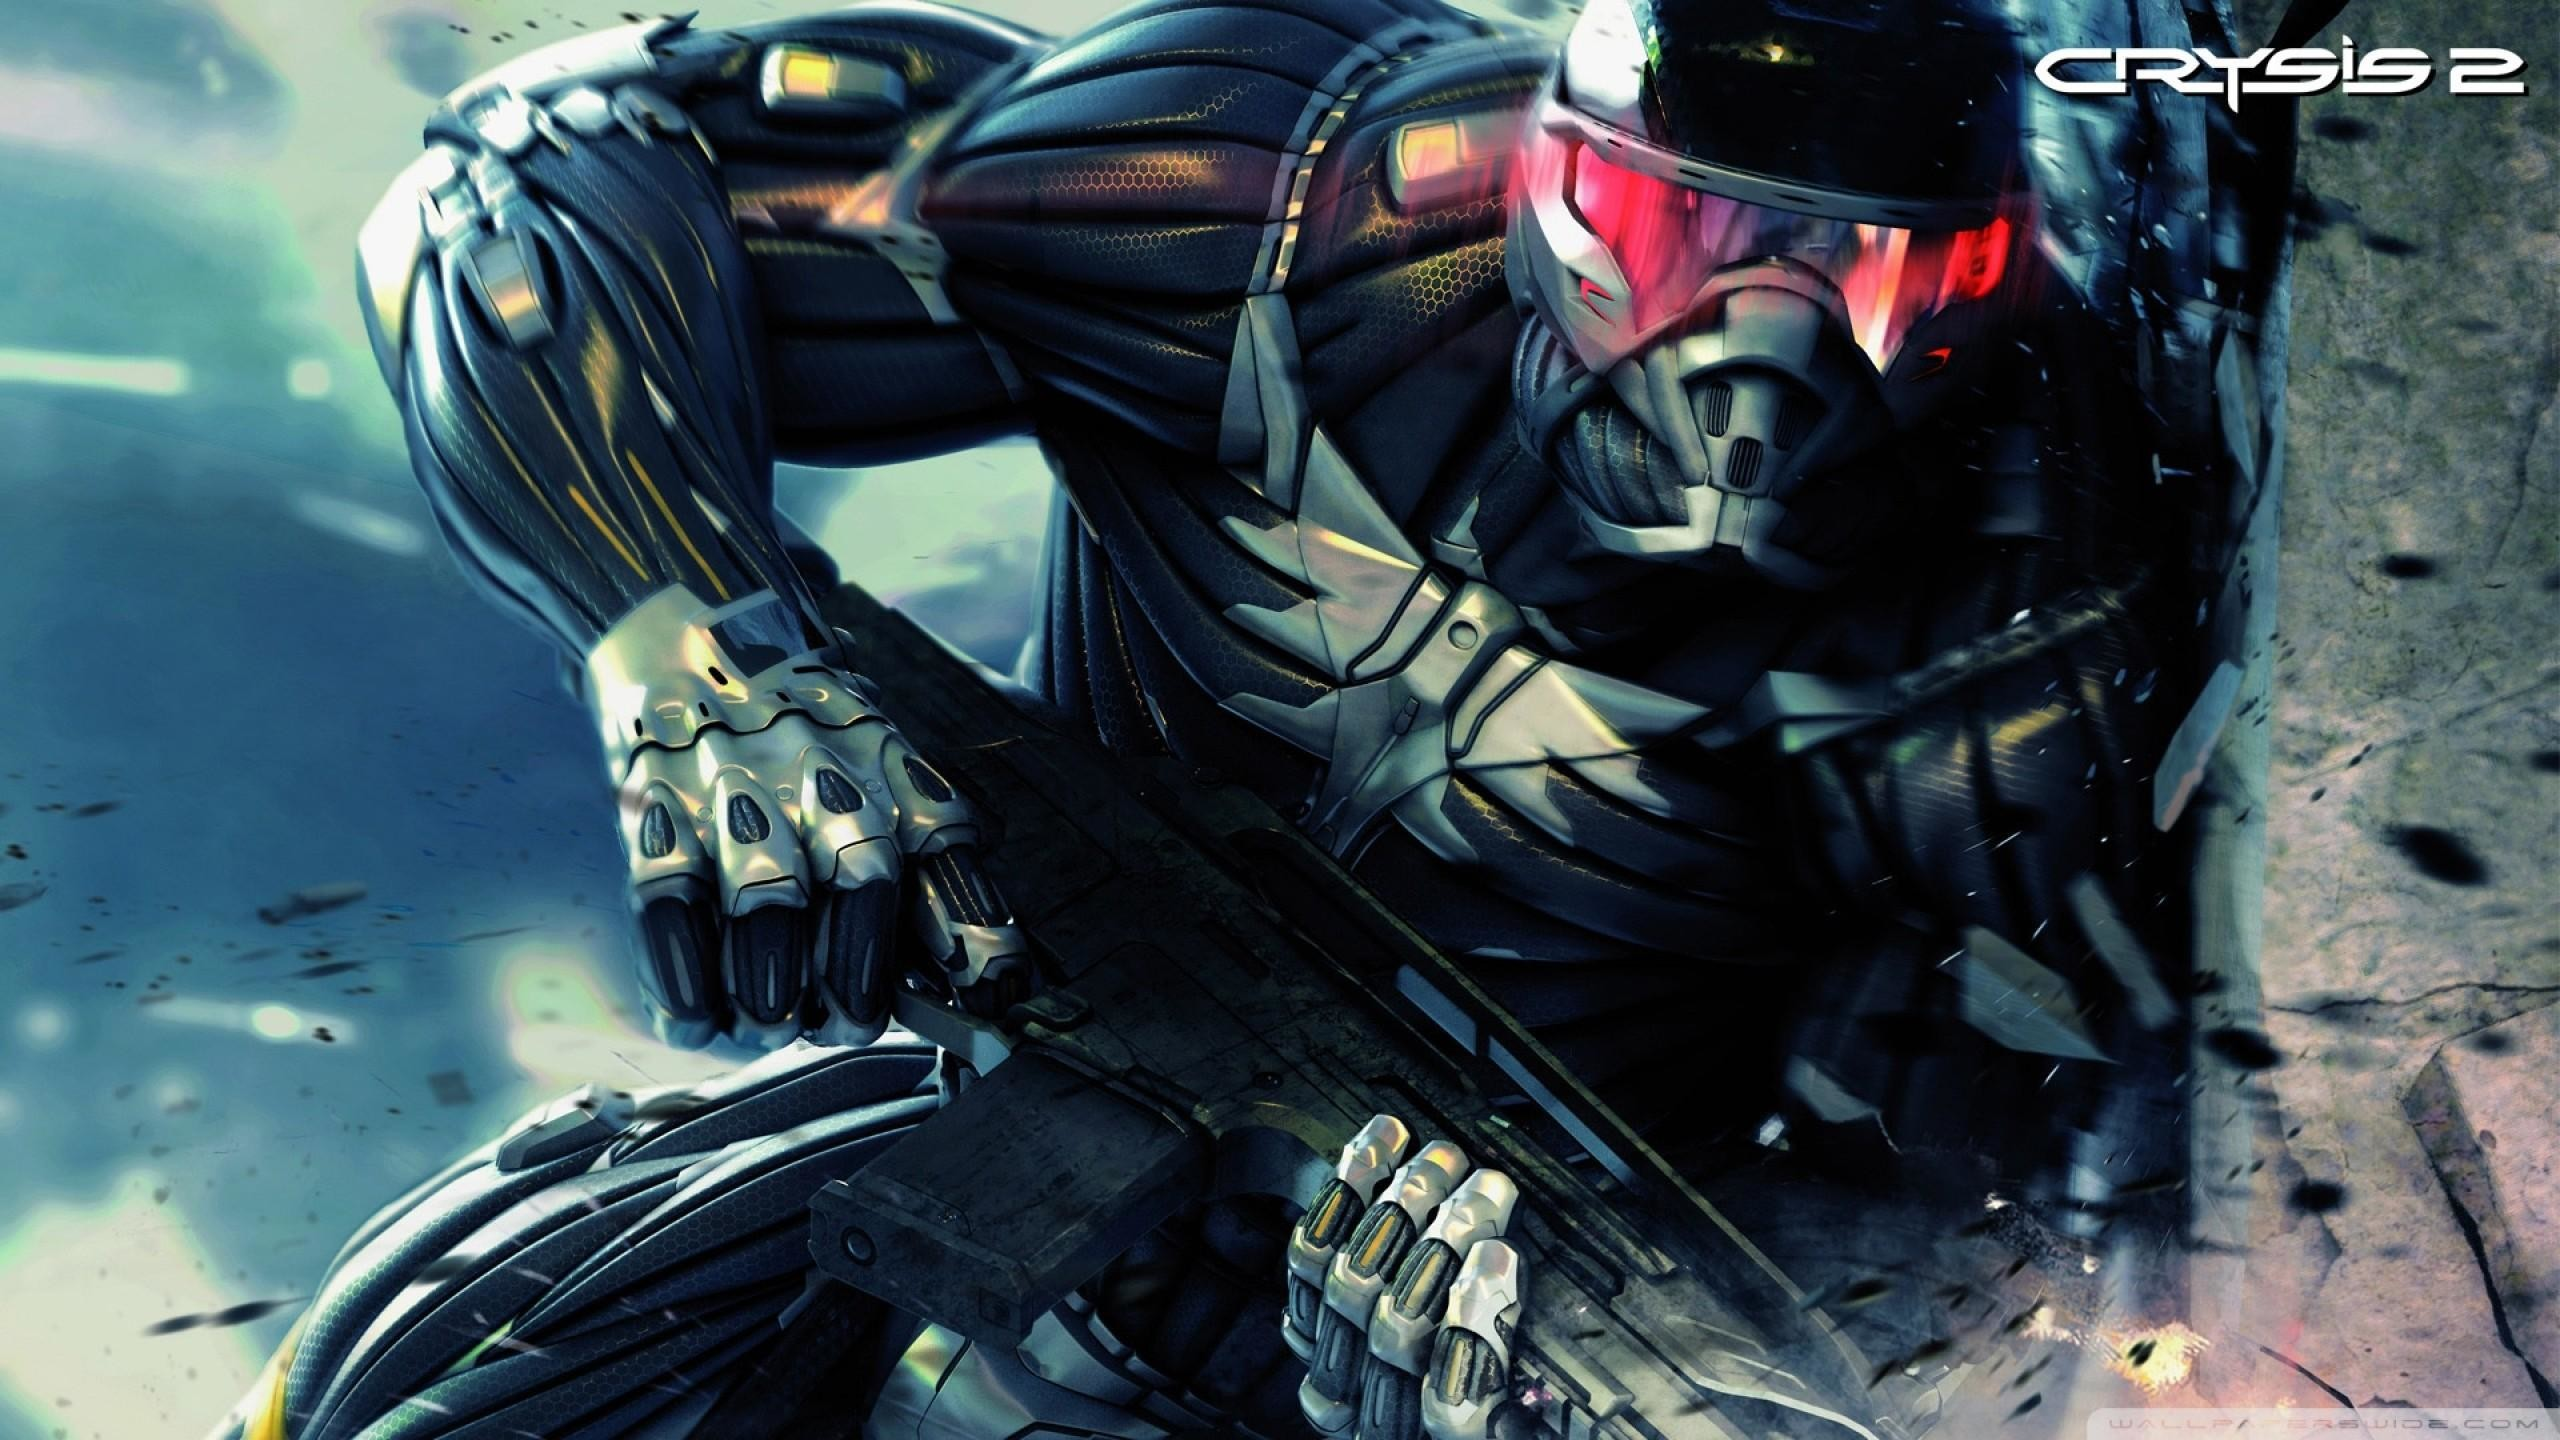 2560x1440 1920x1080 crysis 3 wallpaper 25/41 | first person shooter games hd  backgrounds